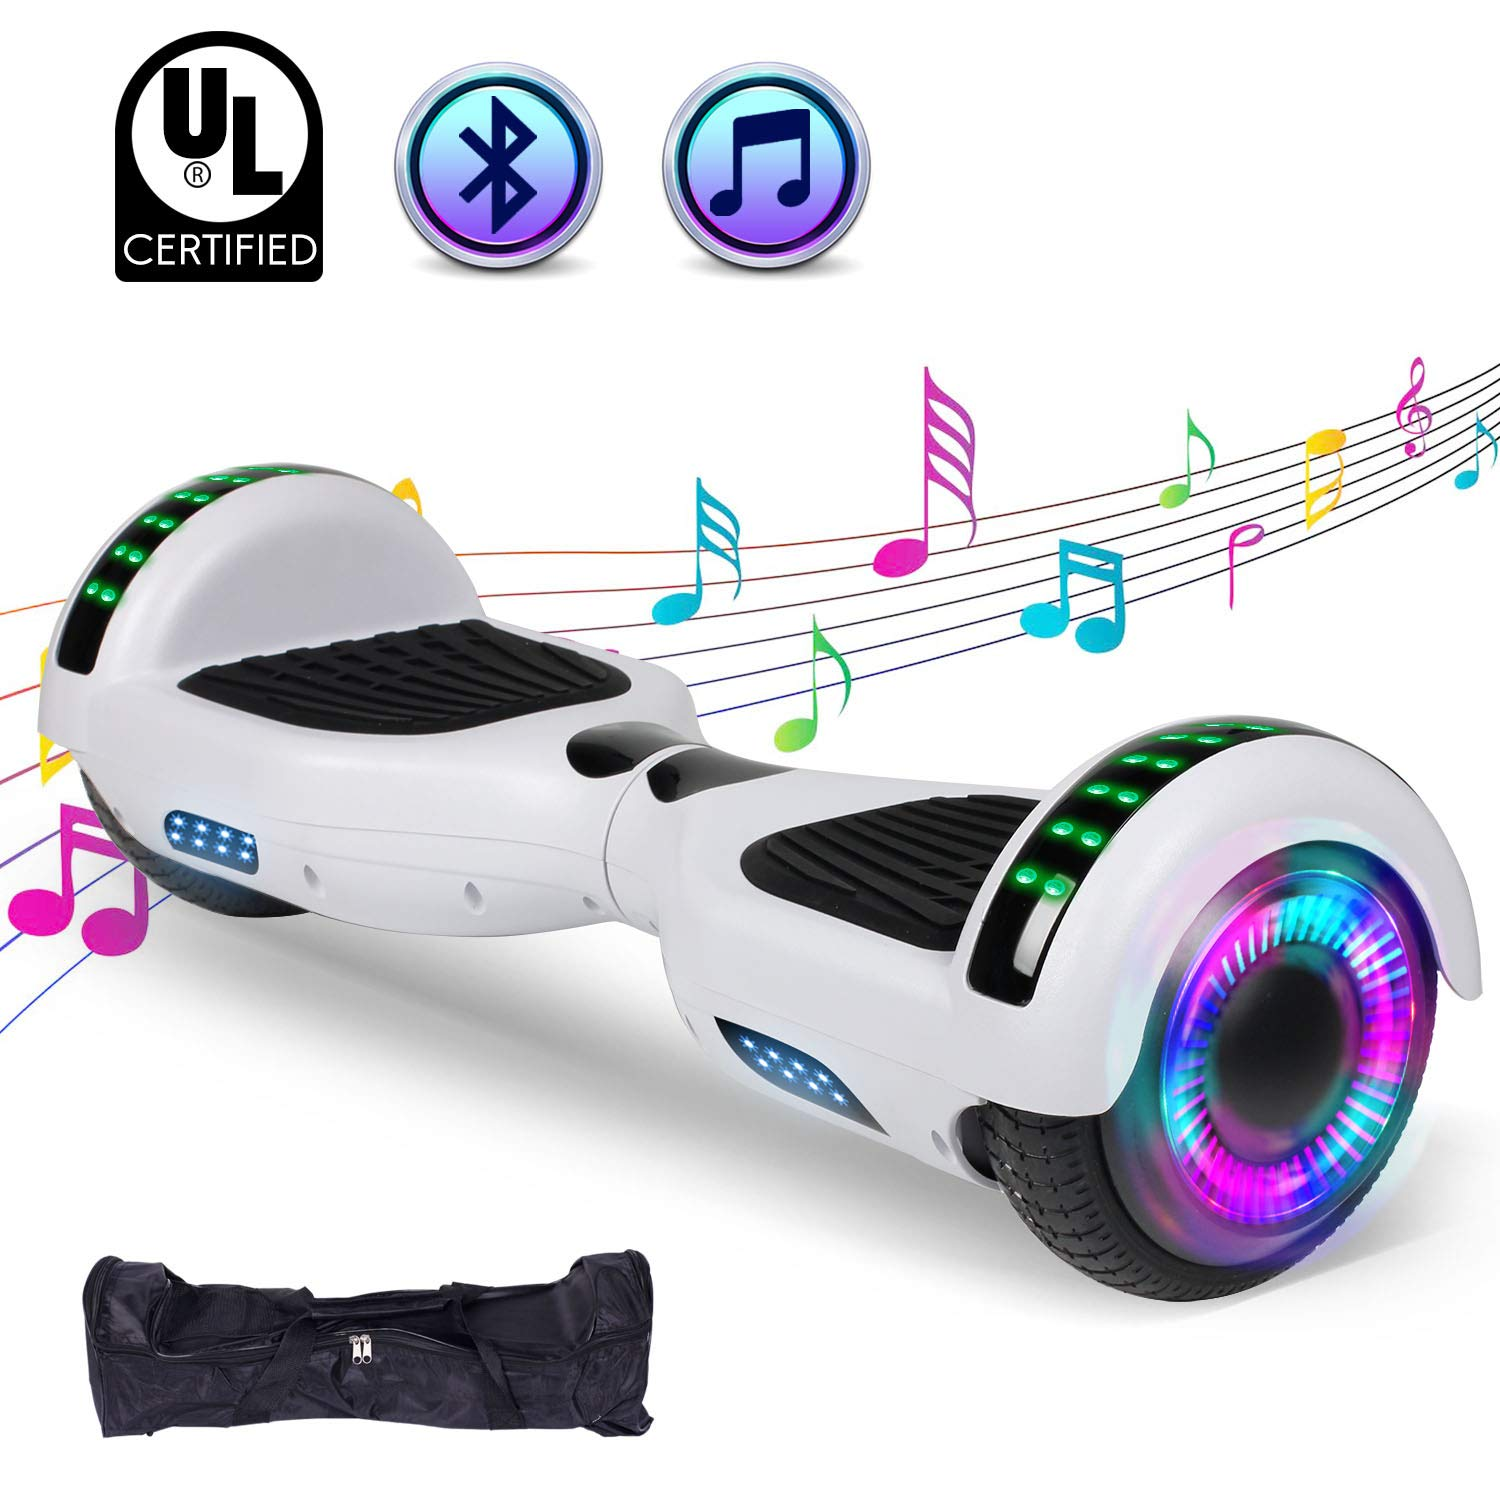 FLYING-ANT Hoverboard UL 2272 Certified 6.5'' Two-Wheel Bluetooth Self Balancing Electric Scooter with LED Light Flash Lights Wheels White(Free Carry Bag)